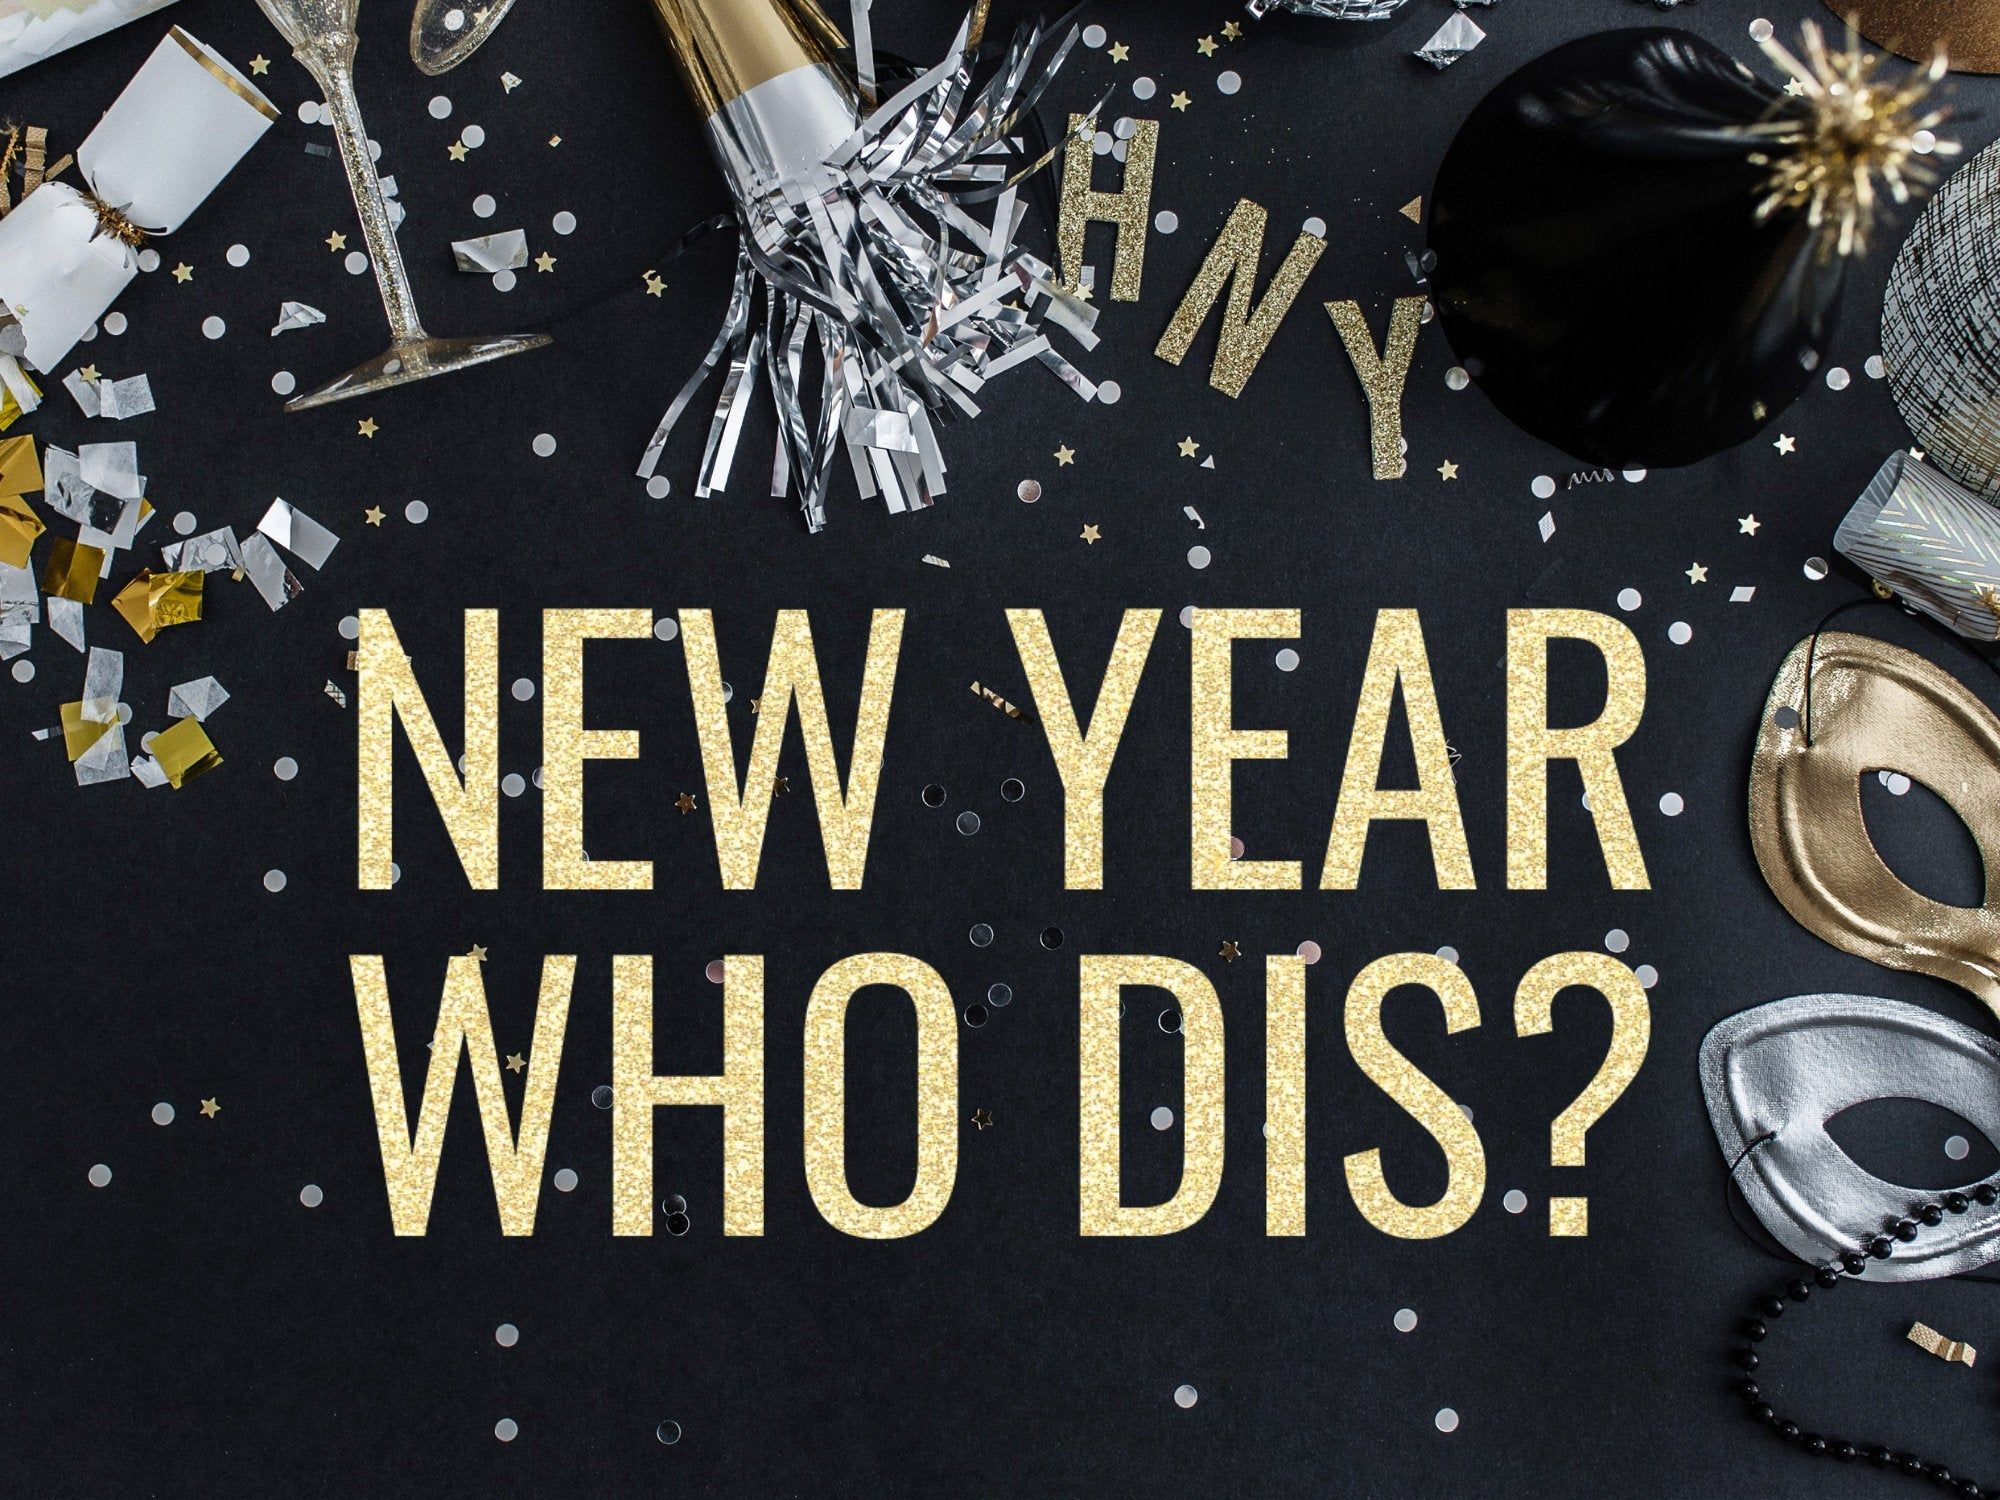 Last Minute Party Print These Decorations New Years Eve Decorations New Year S Eve Crafts New Year S Eve Celebrations